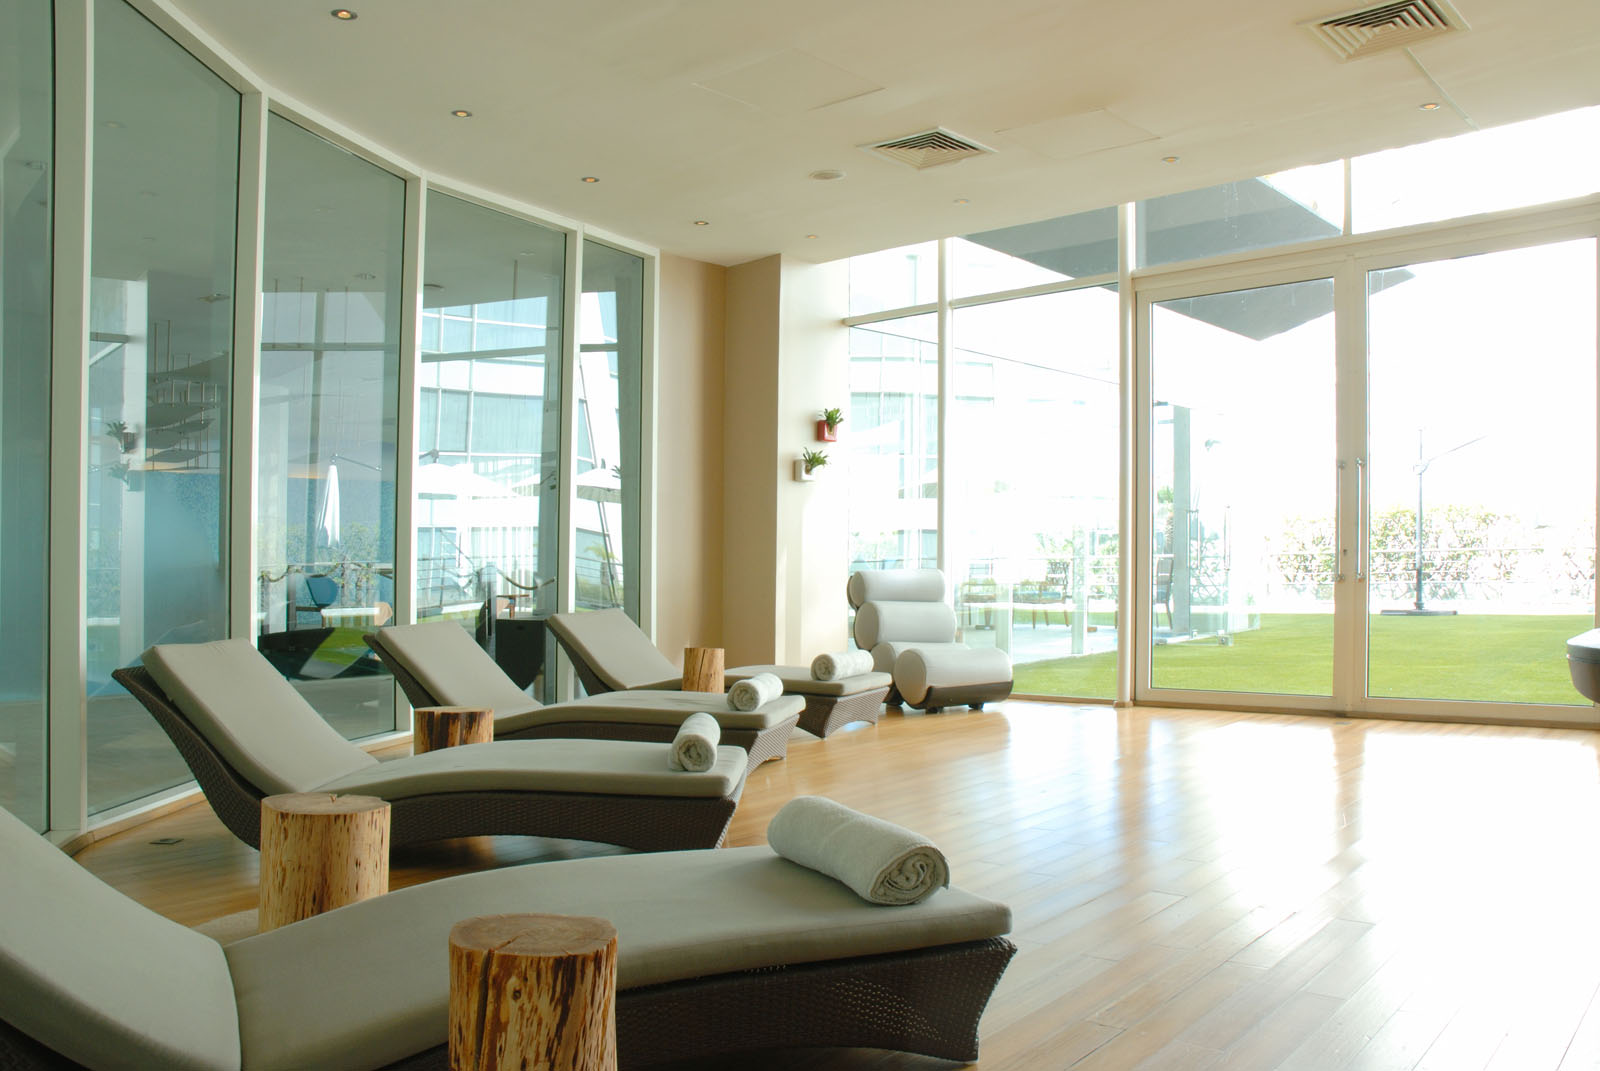 Spa at Kenzi Tower Hotel in central Casablanca, Morocco